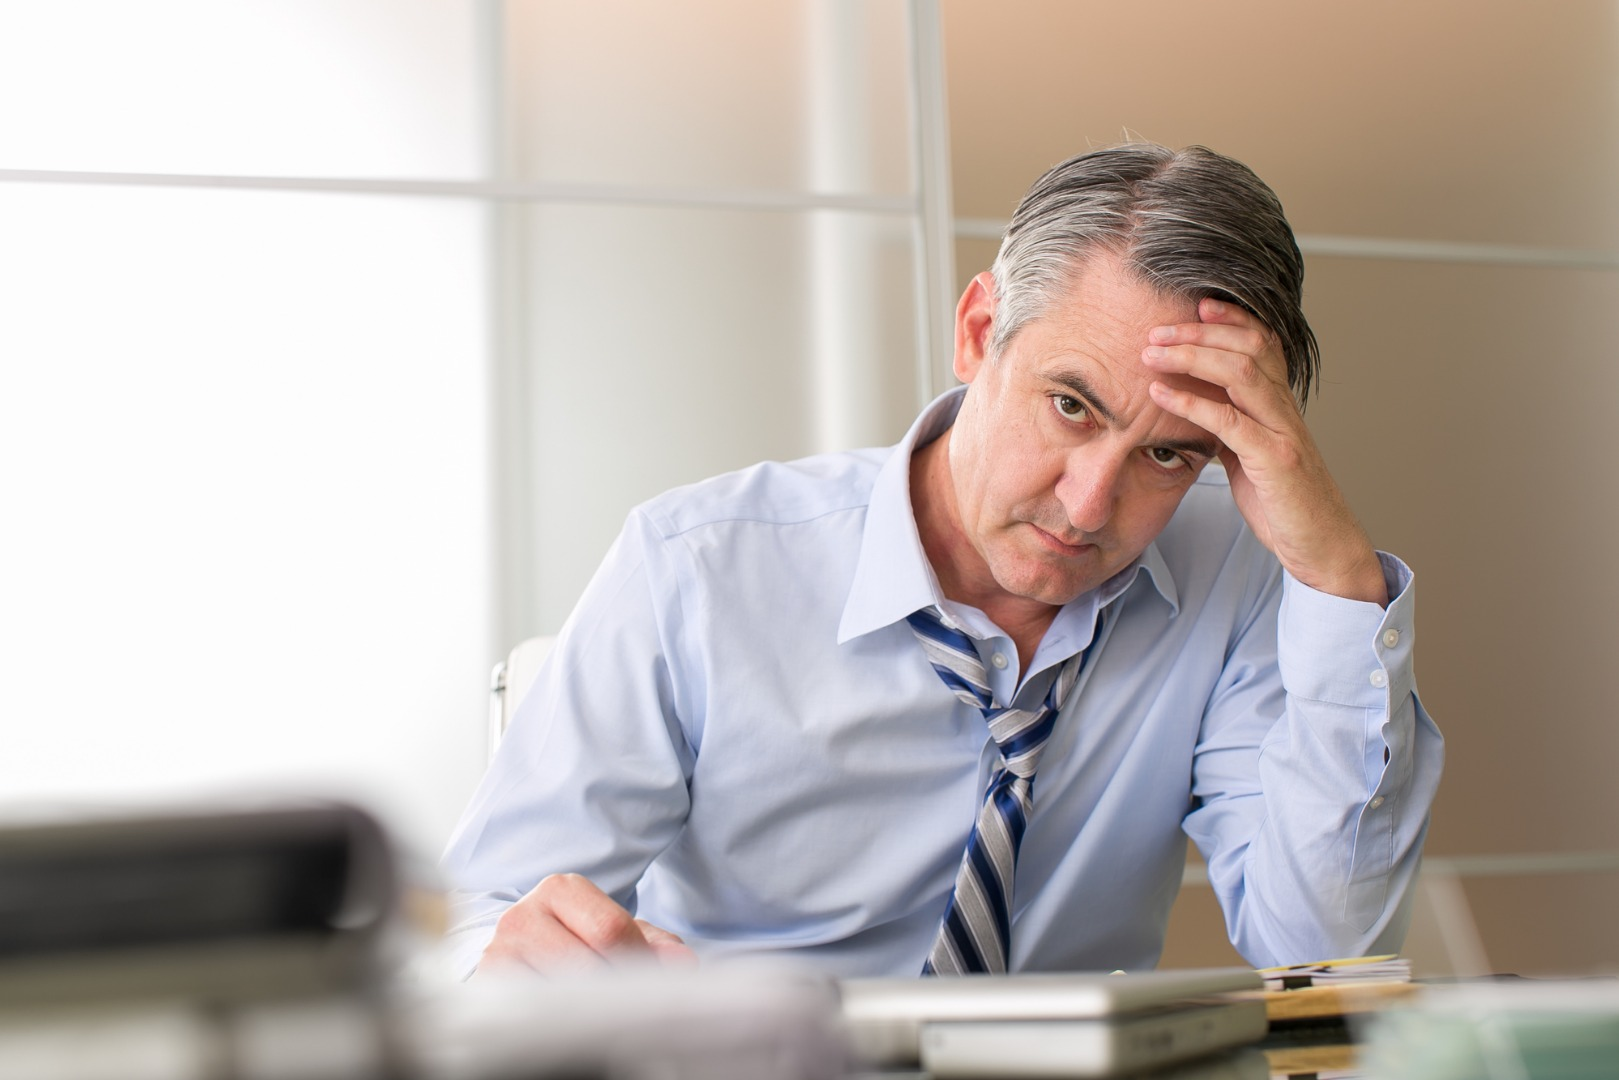 Stress in middle age found to shrink your brain and impair memory